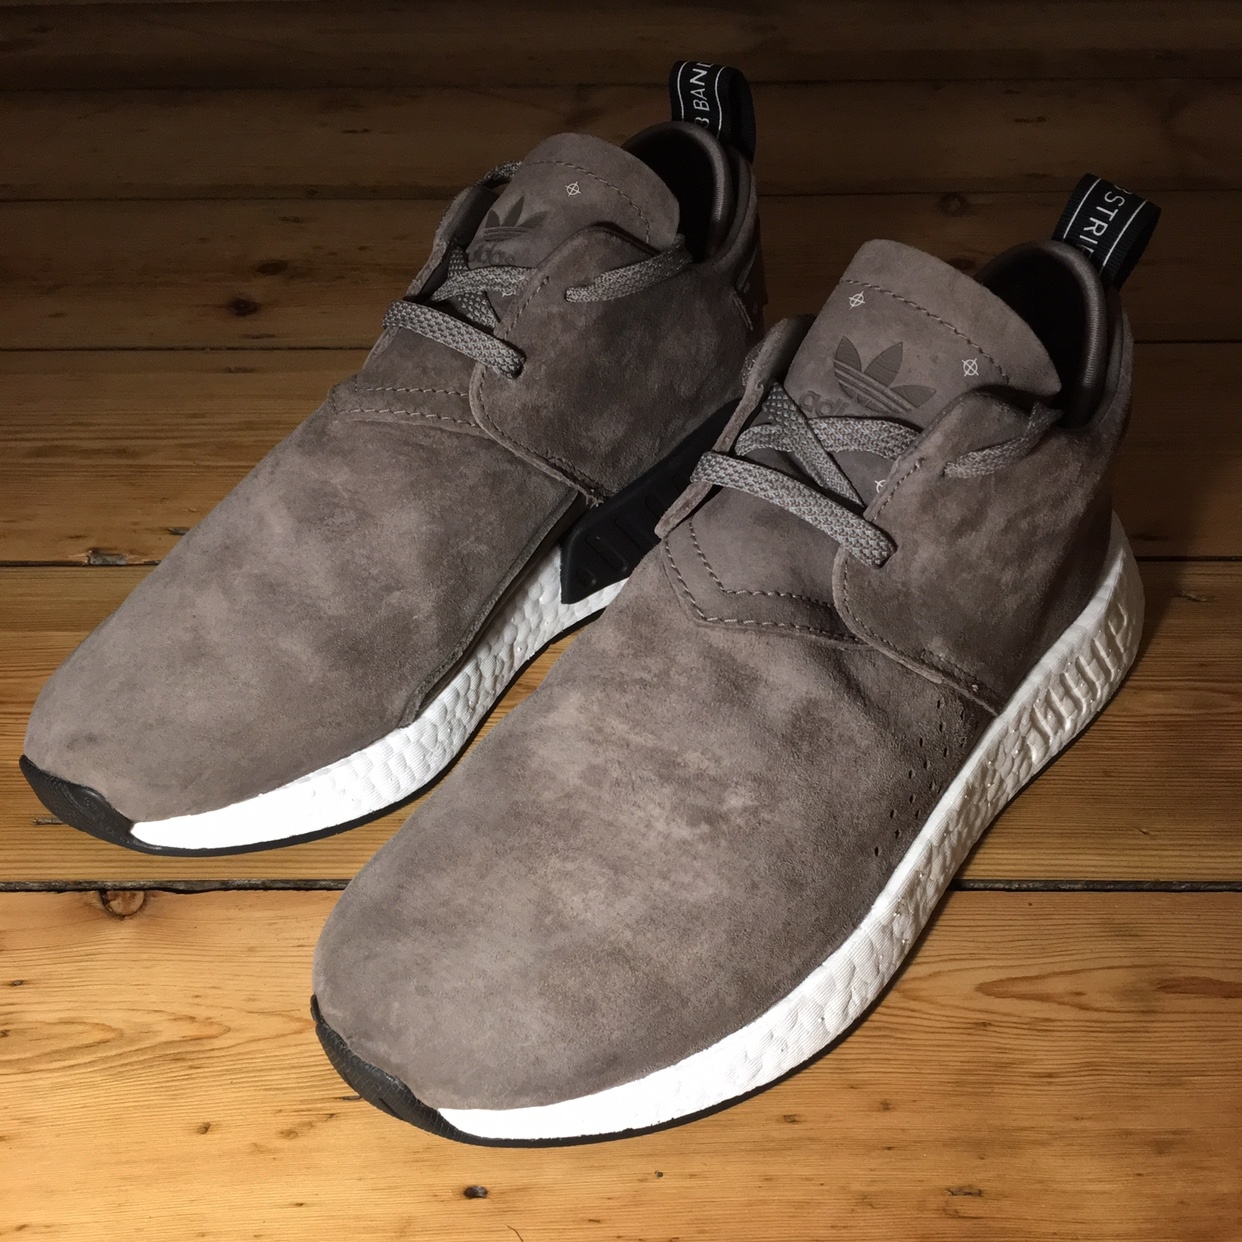 Adidas NMD C2 'Suede', Adidas Code: BY9913, Size: UK...